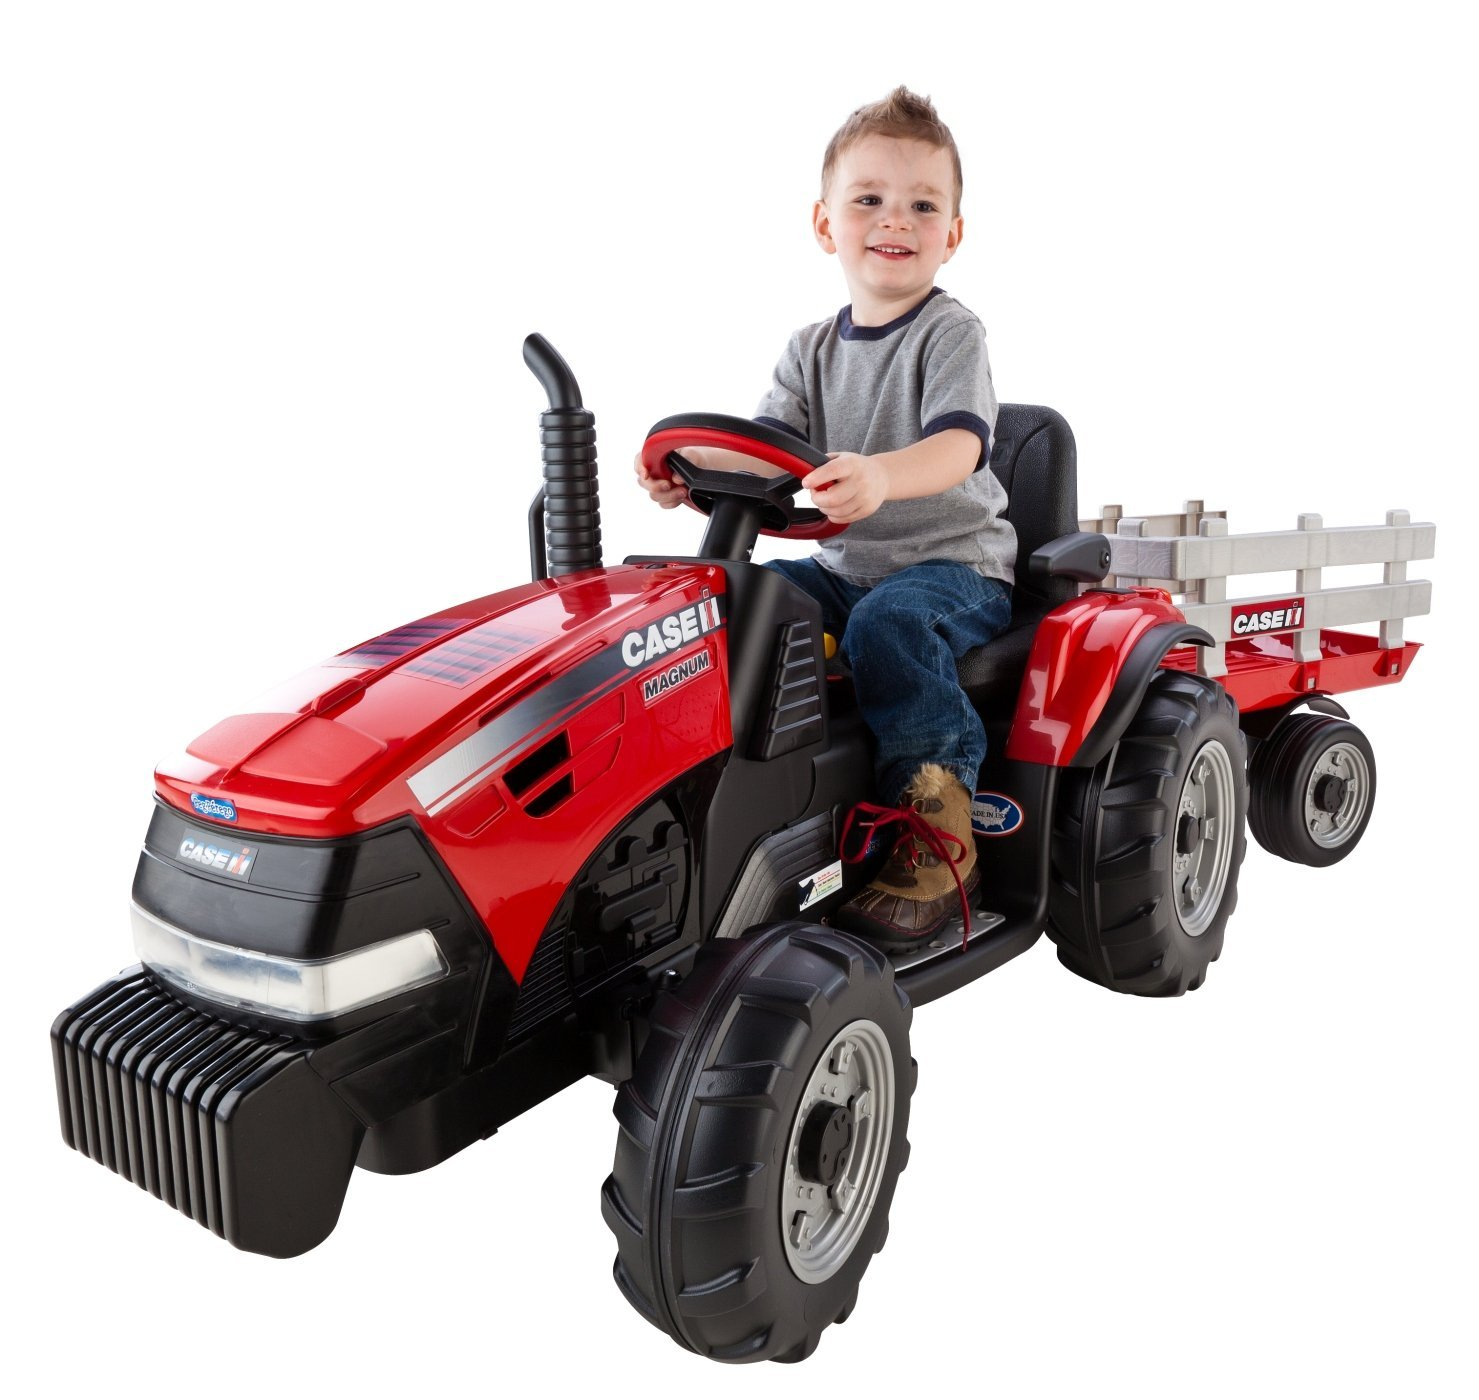 Peg Perego Case IH Magnum Tractor with Trailer Ride-On Toy